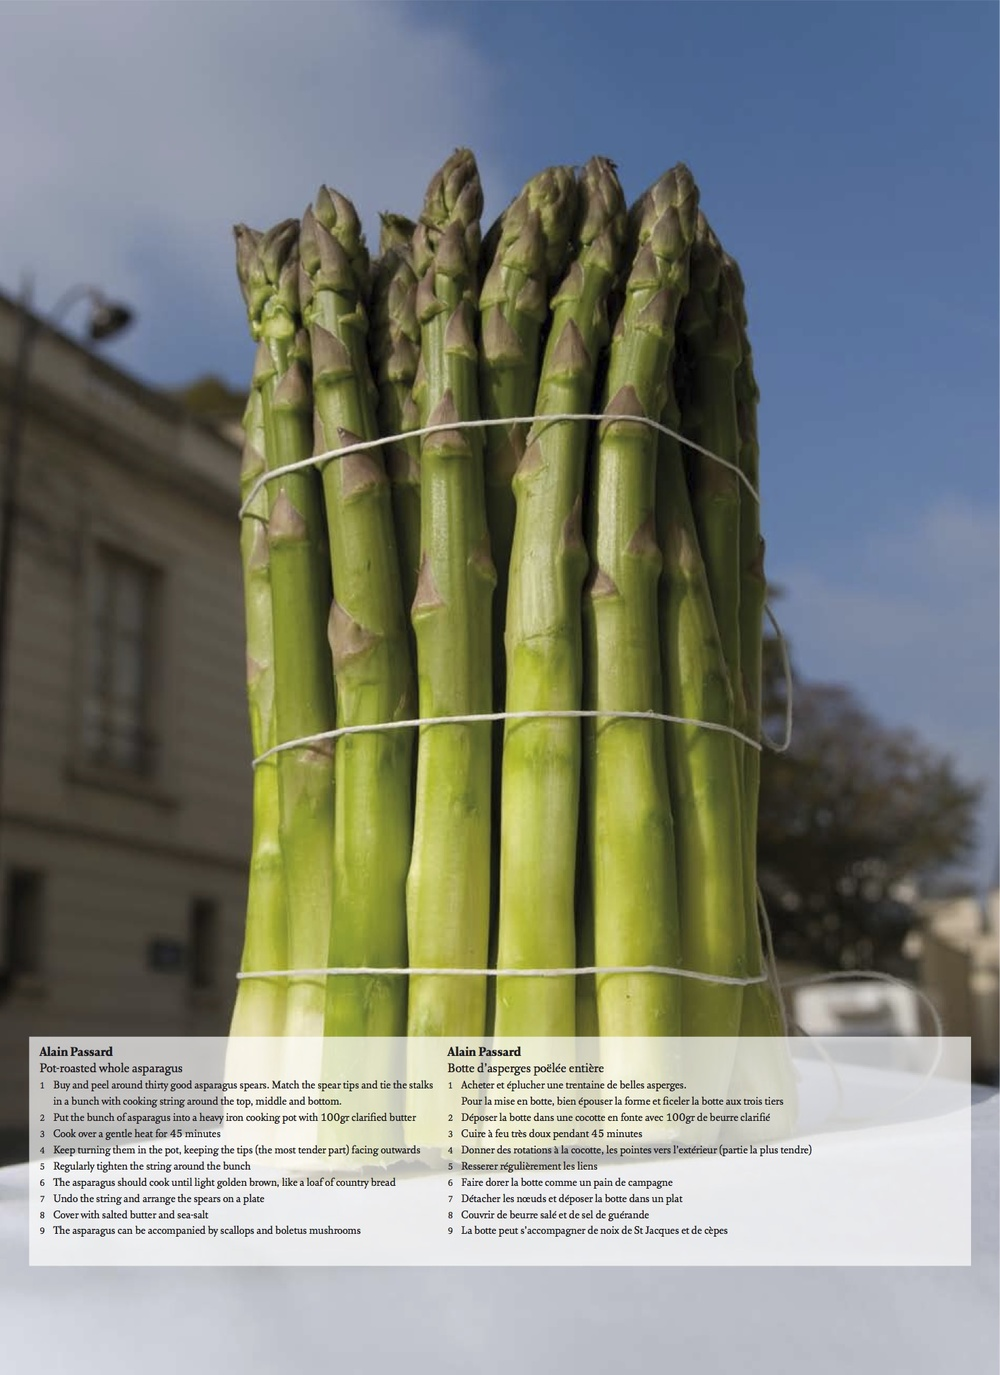 Botte_d_asperges_Alain_Passard_for_ICONOfly.jpg